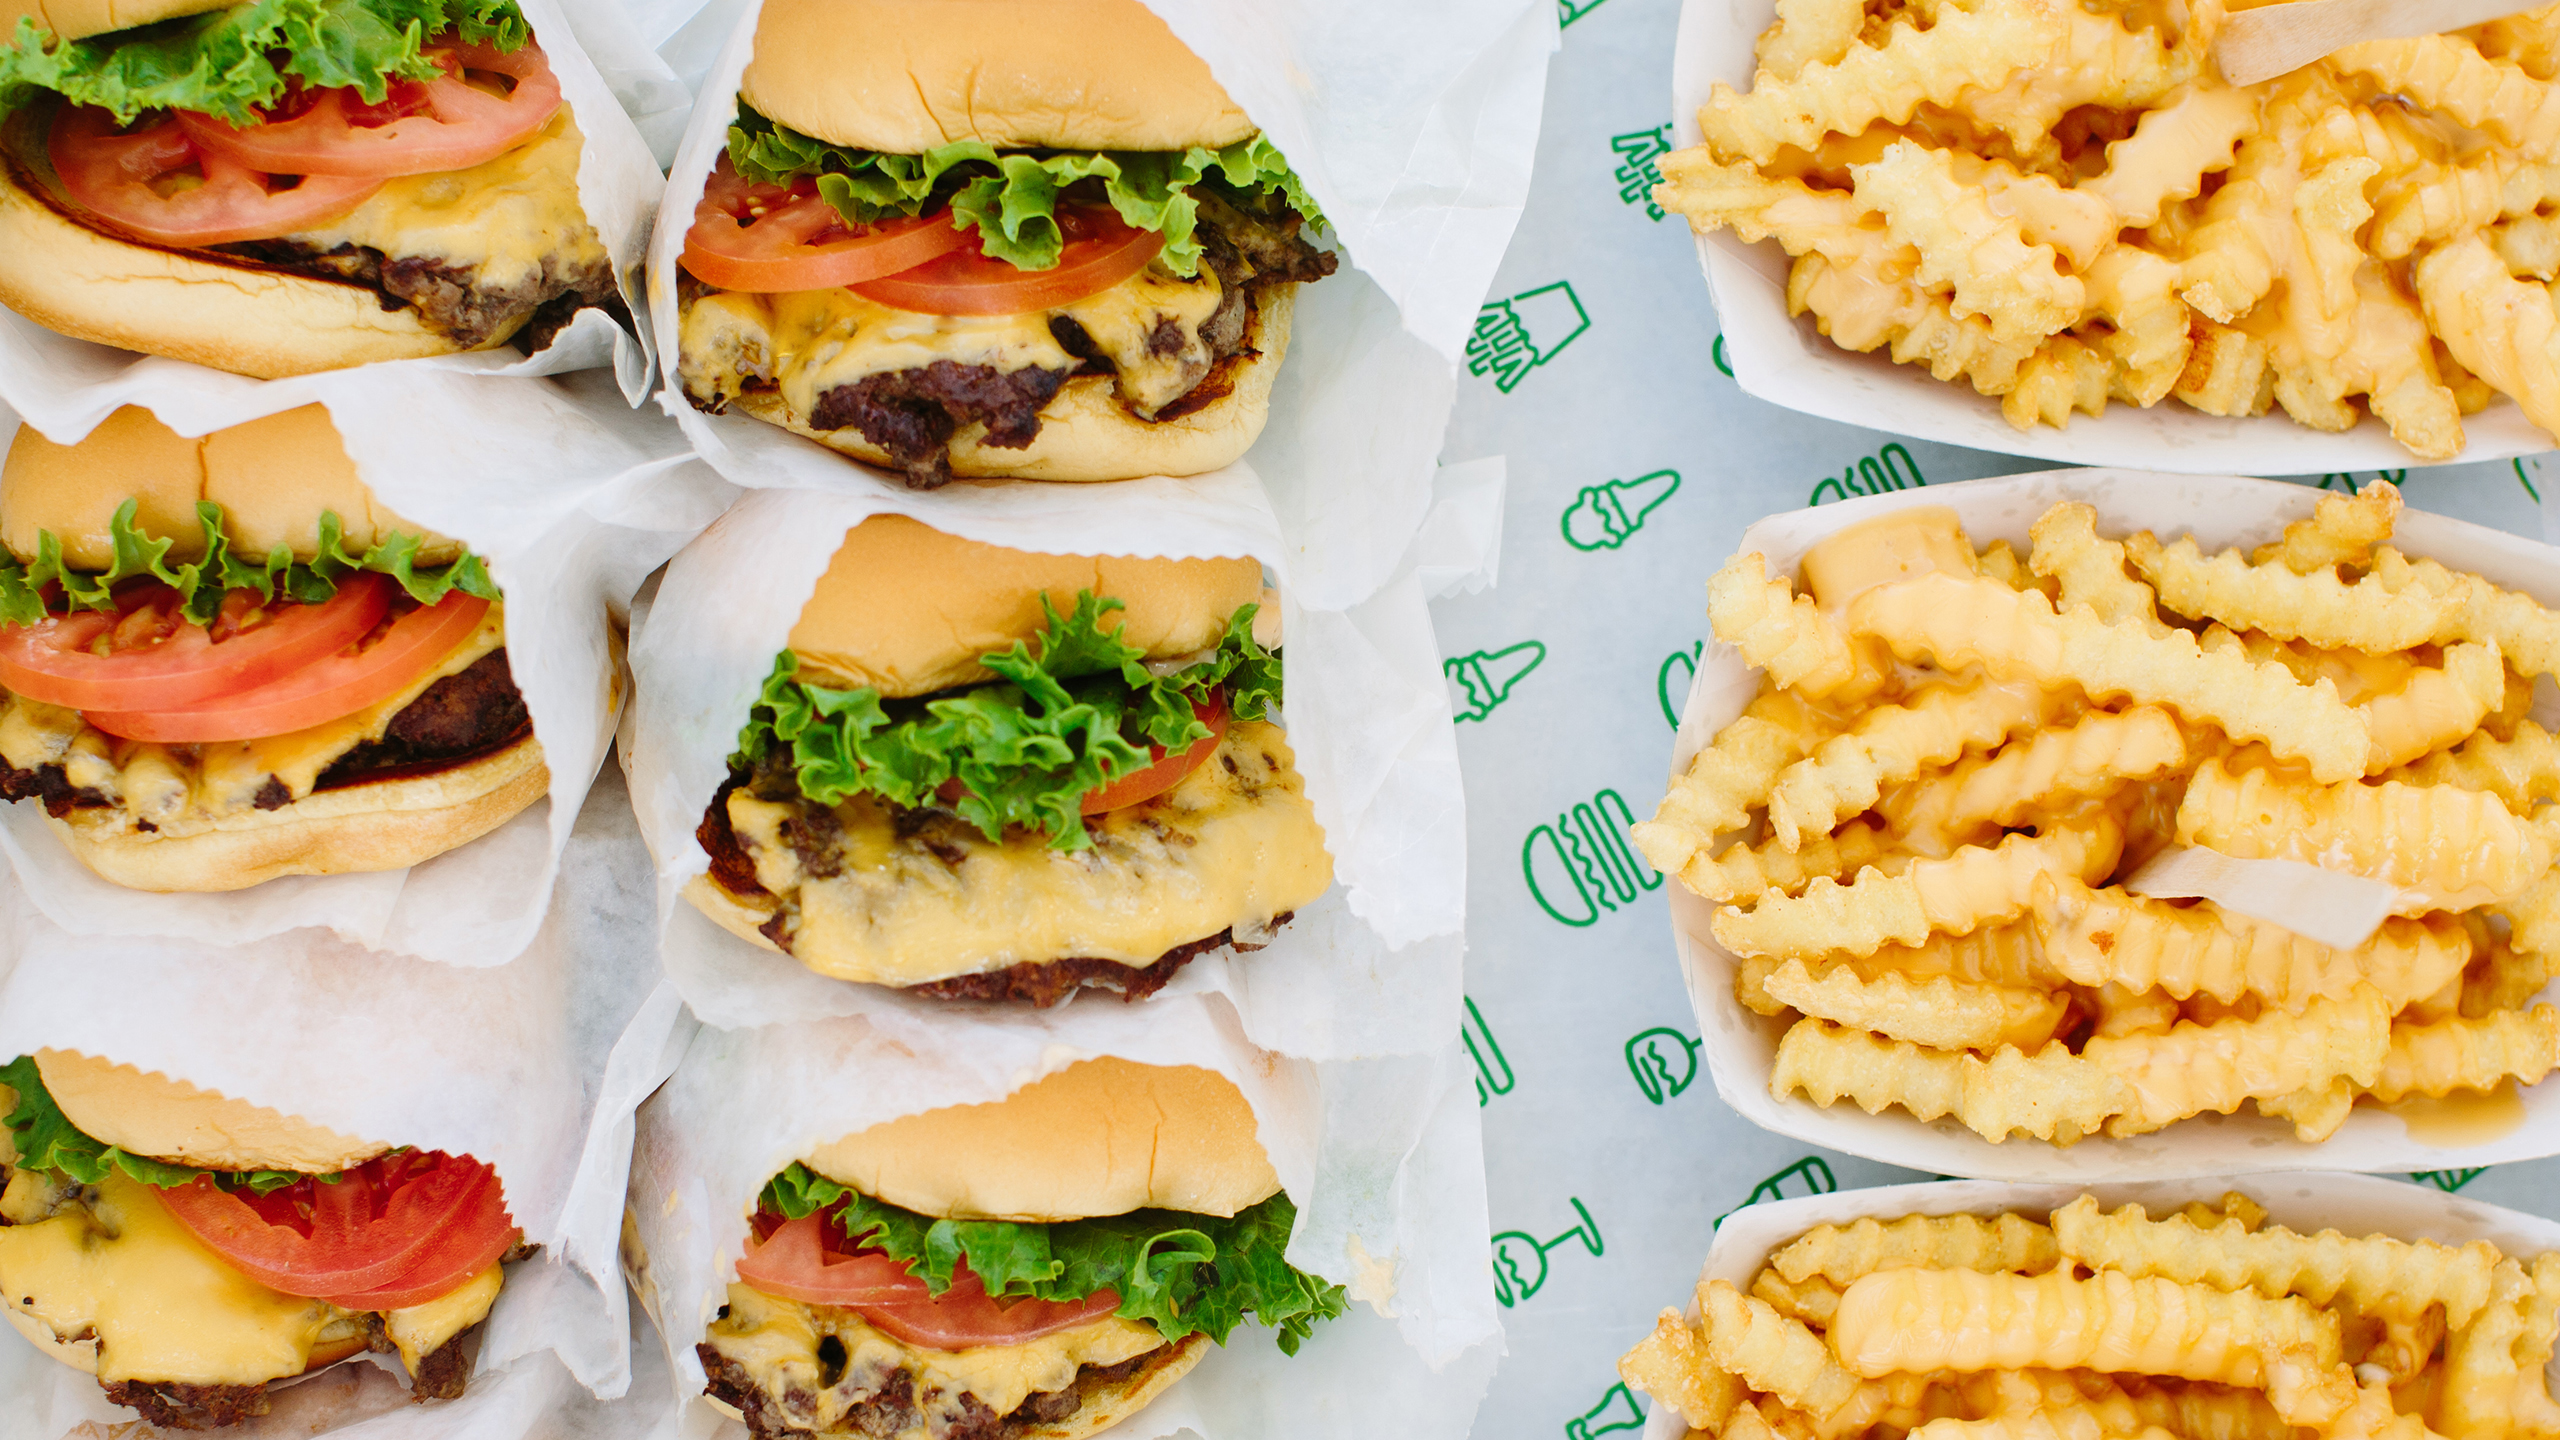 A full tray of burgers and crinkle-cut fries from Shake Shack, shown above.